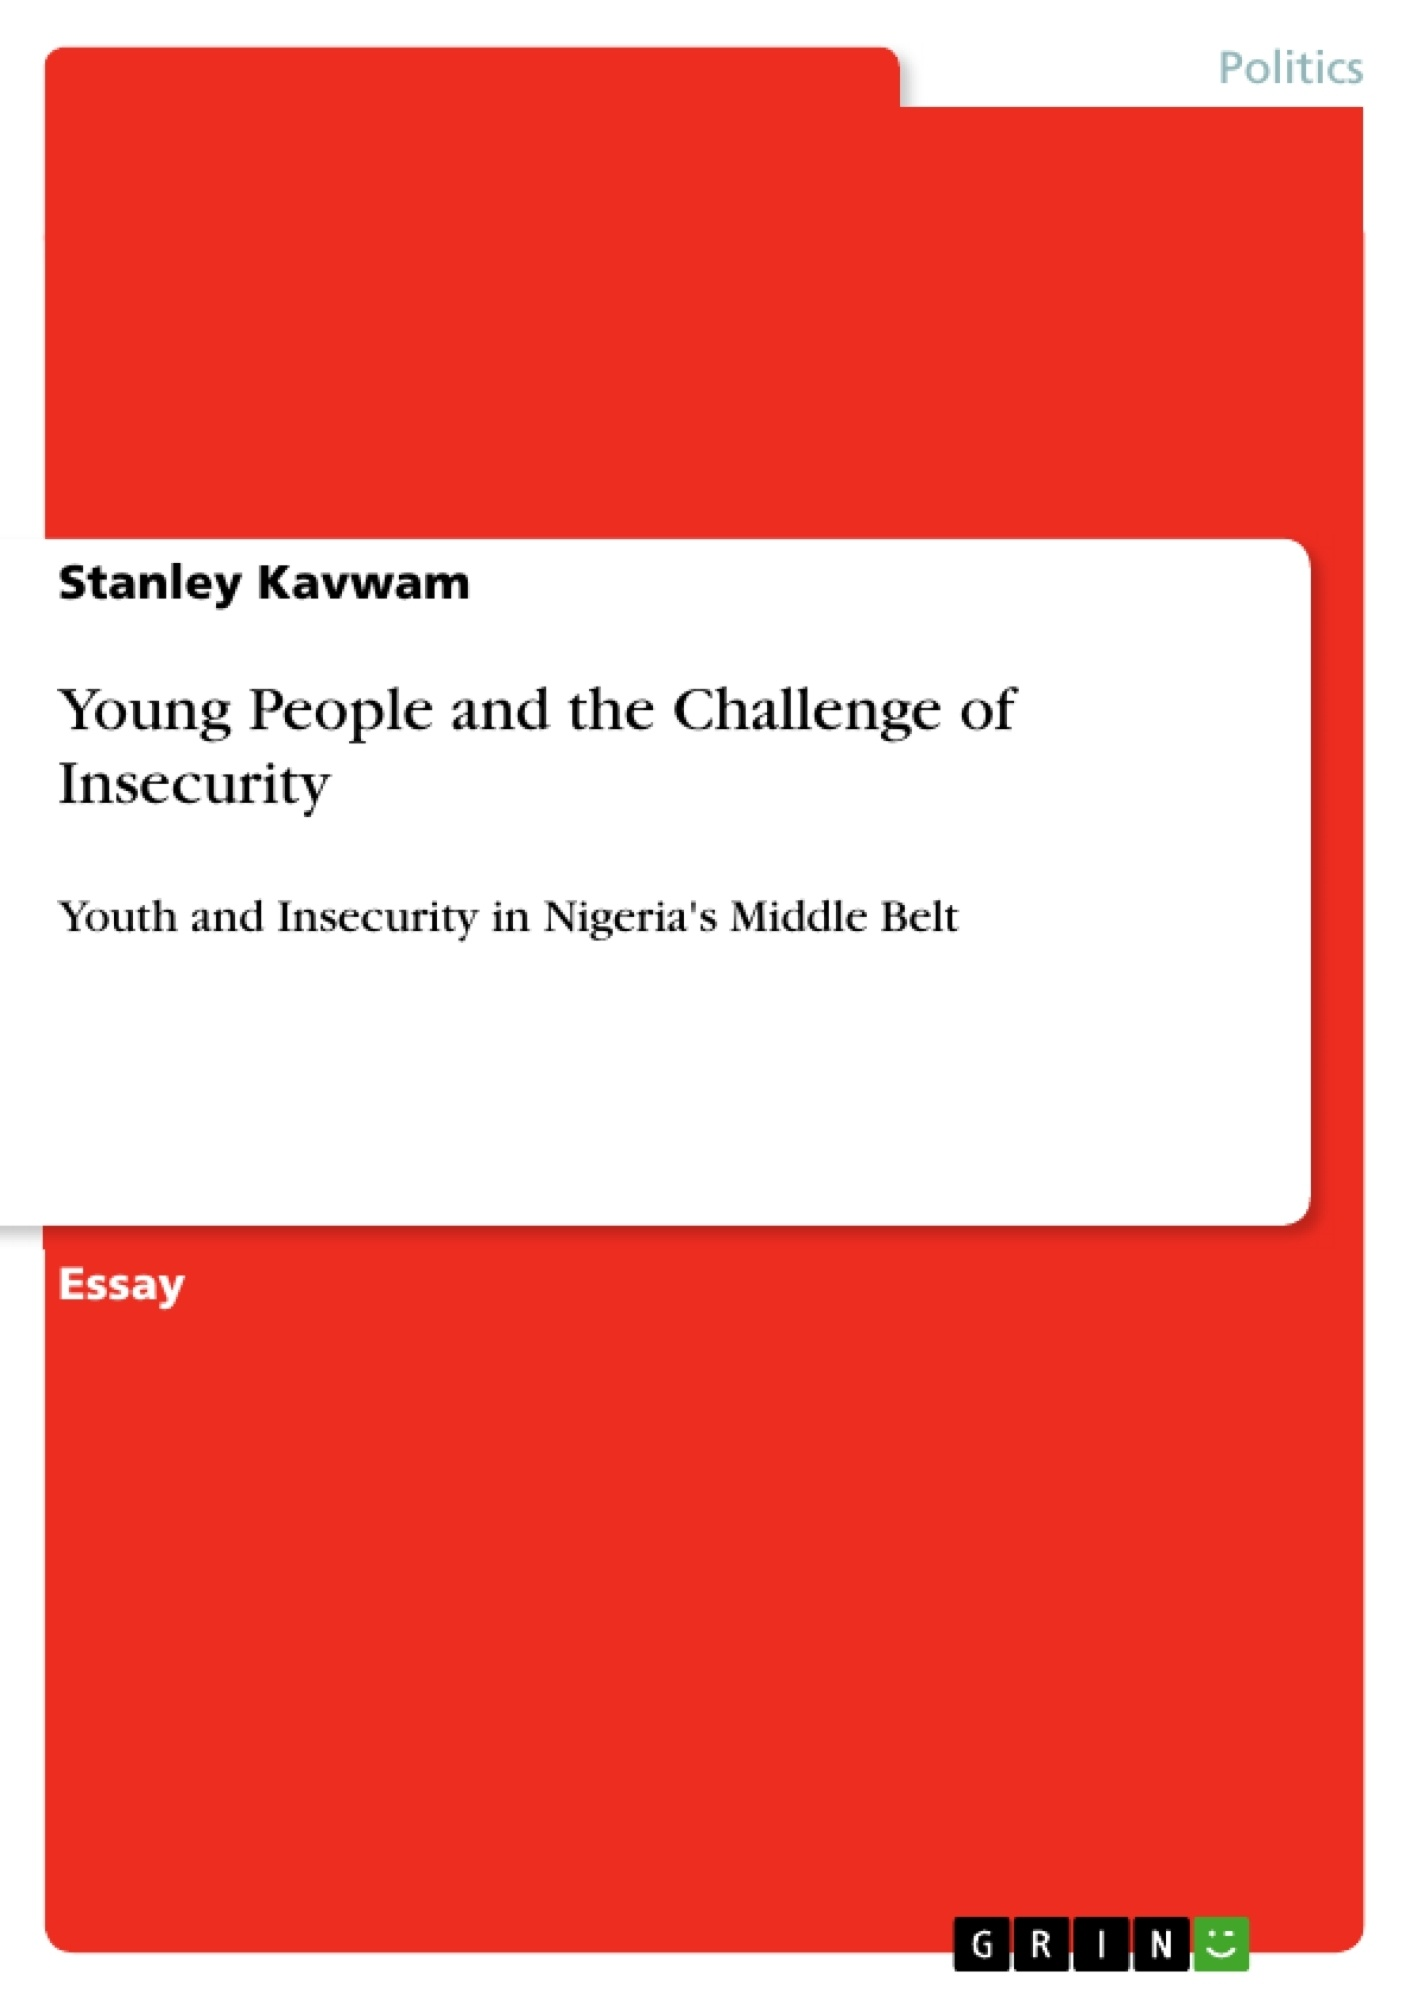 Title: Young People and the Challenge of Insecurity